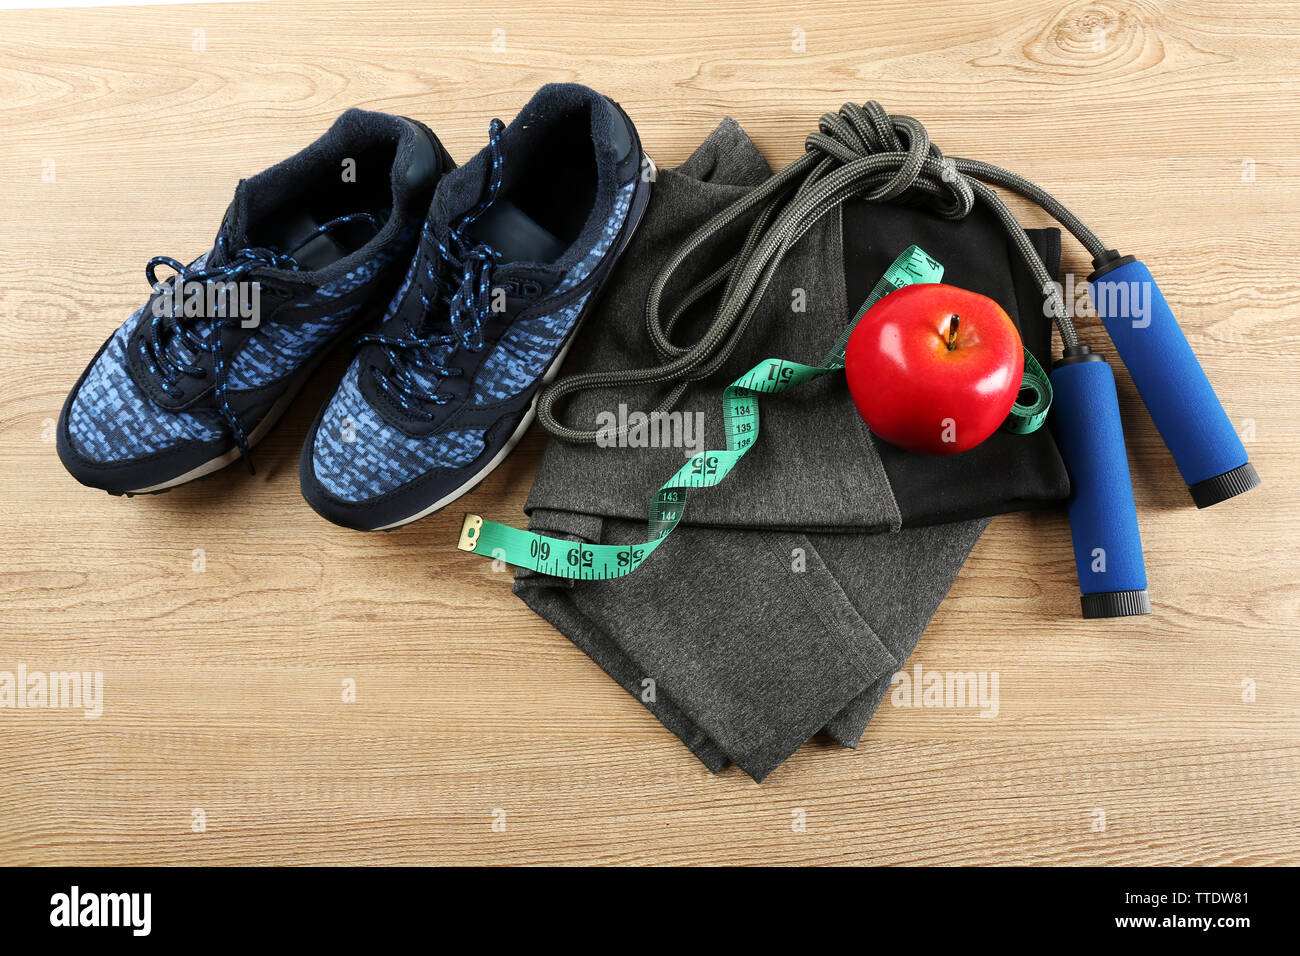 Sport shoes, clothes, equipment and smart phone with headphones on light background - Stock Image